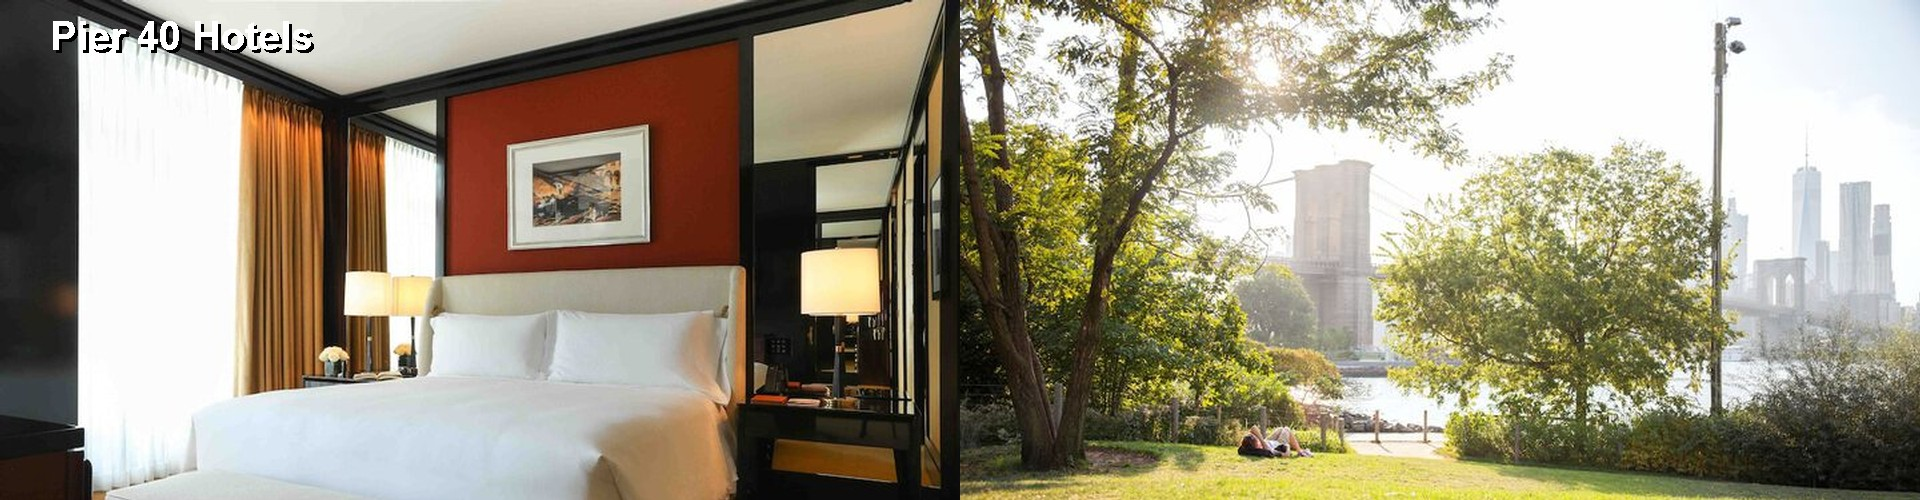 5 Best Hotels near Pier 40